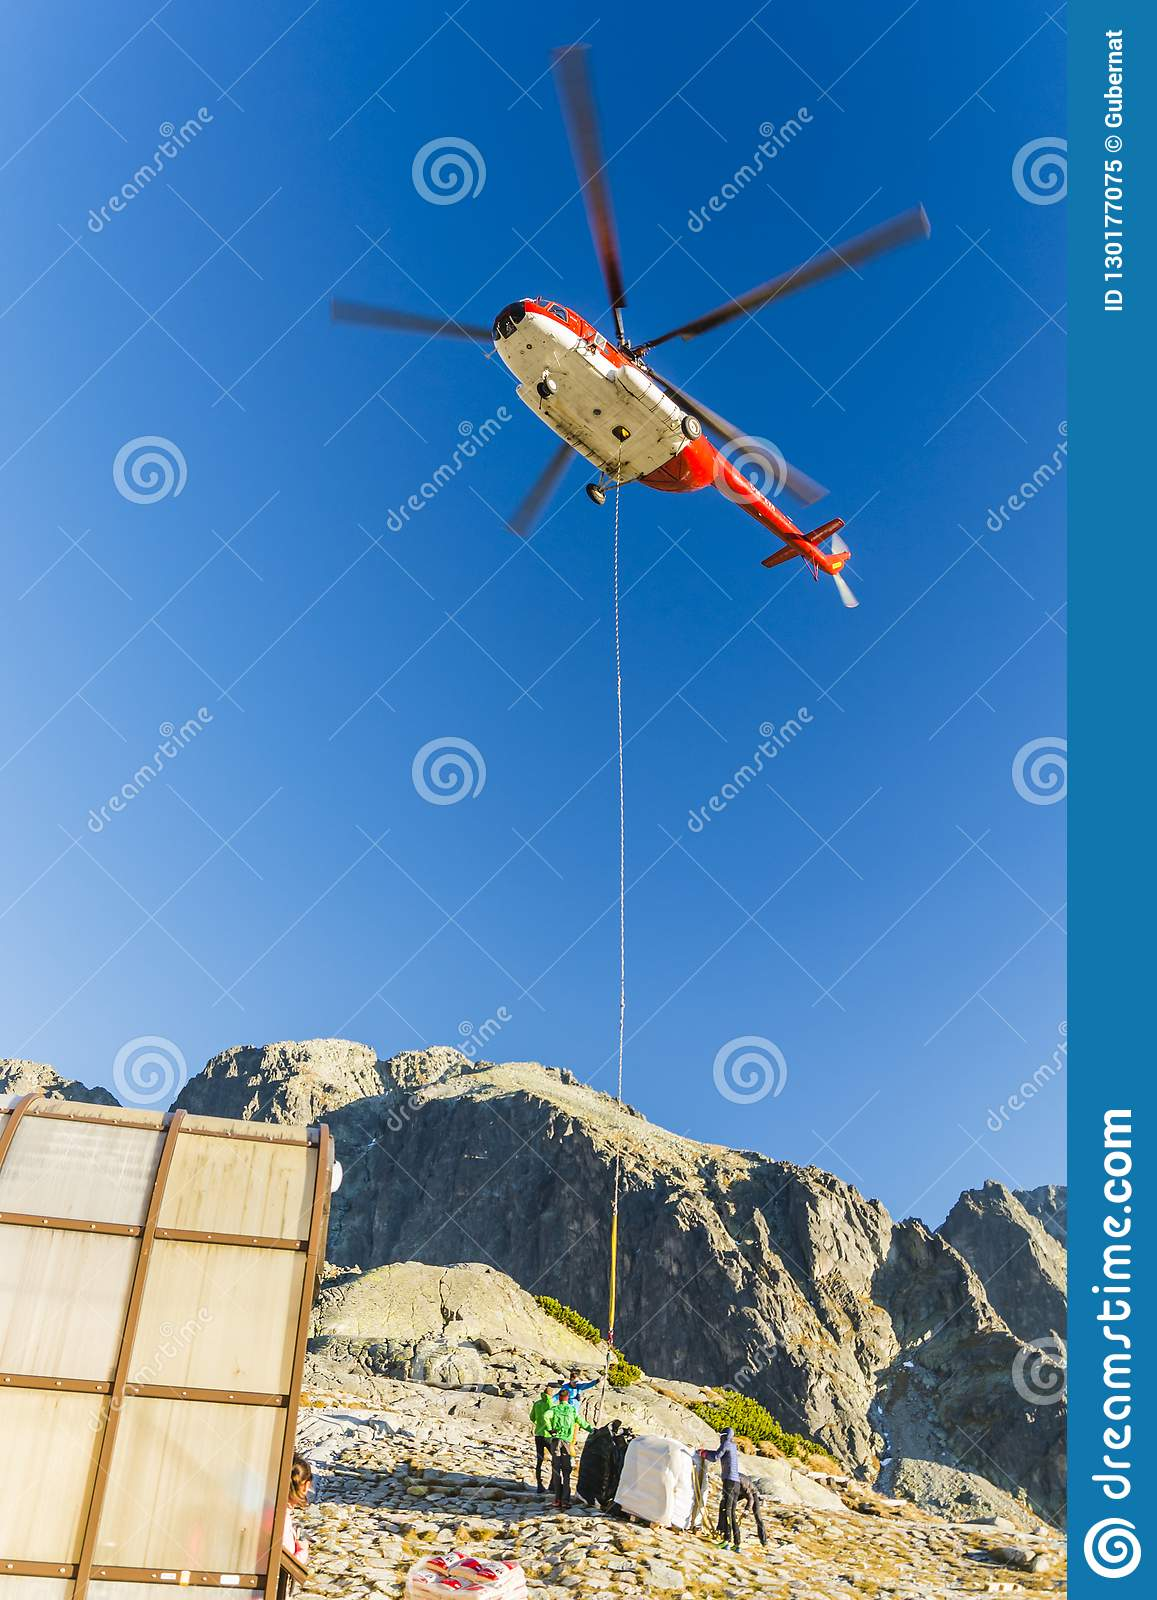 Helicopter OM EVA Type Mil Mi 8T With Delivery To The Mountain Hut Zbojnicka Chata